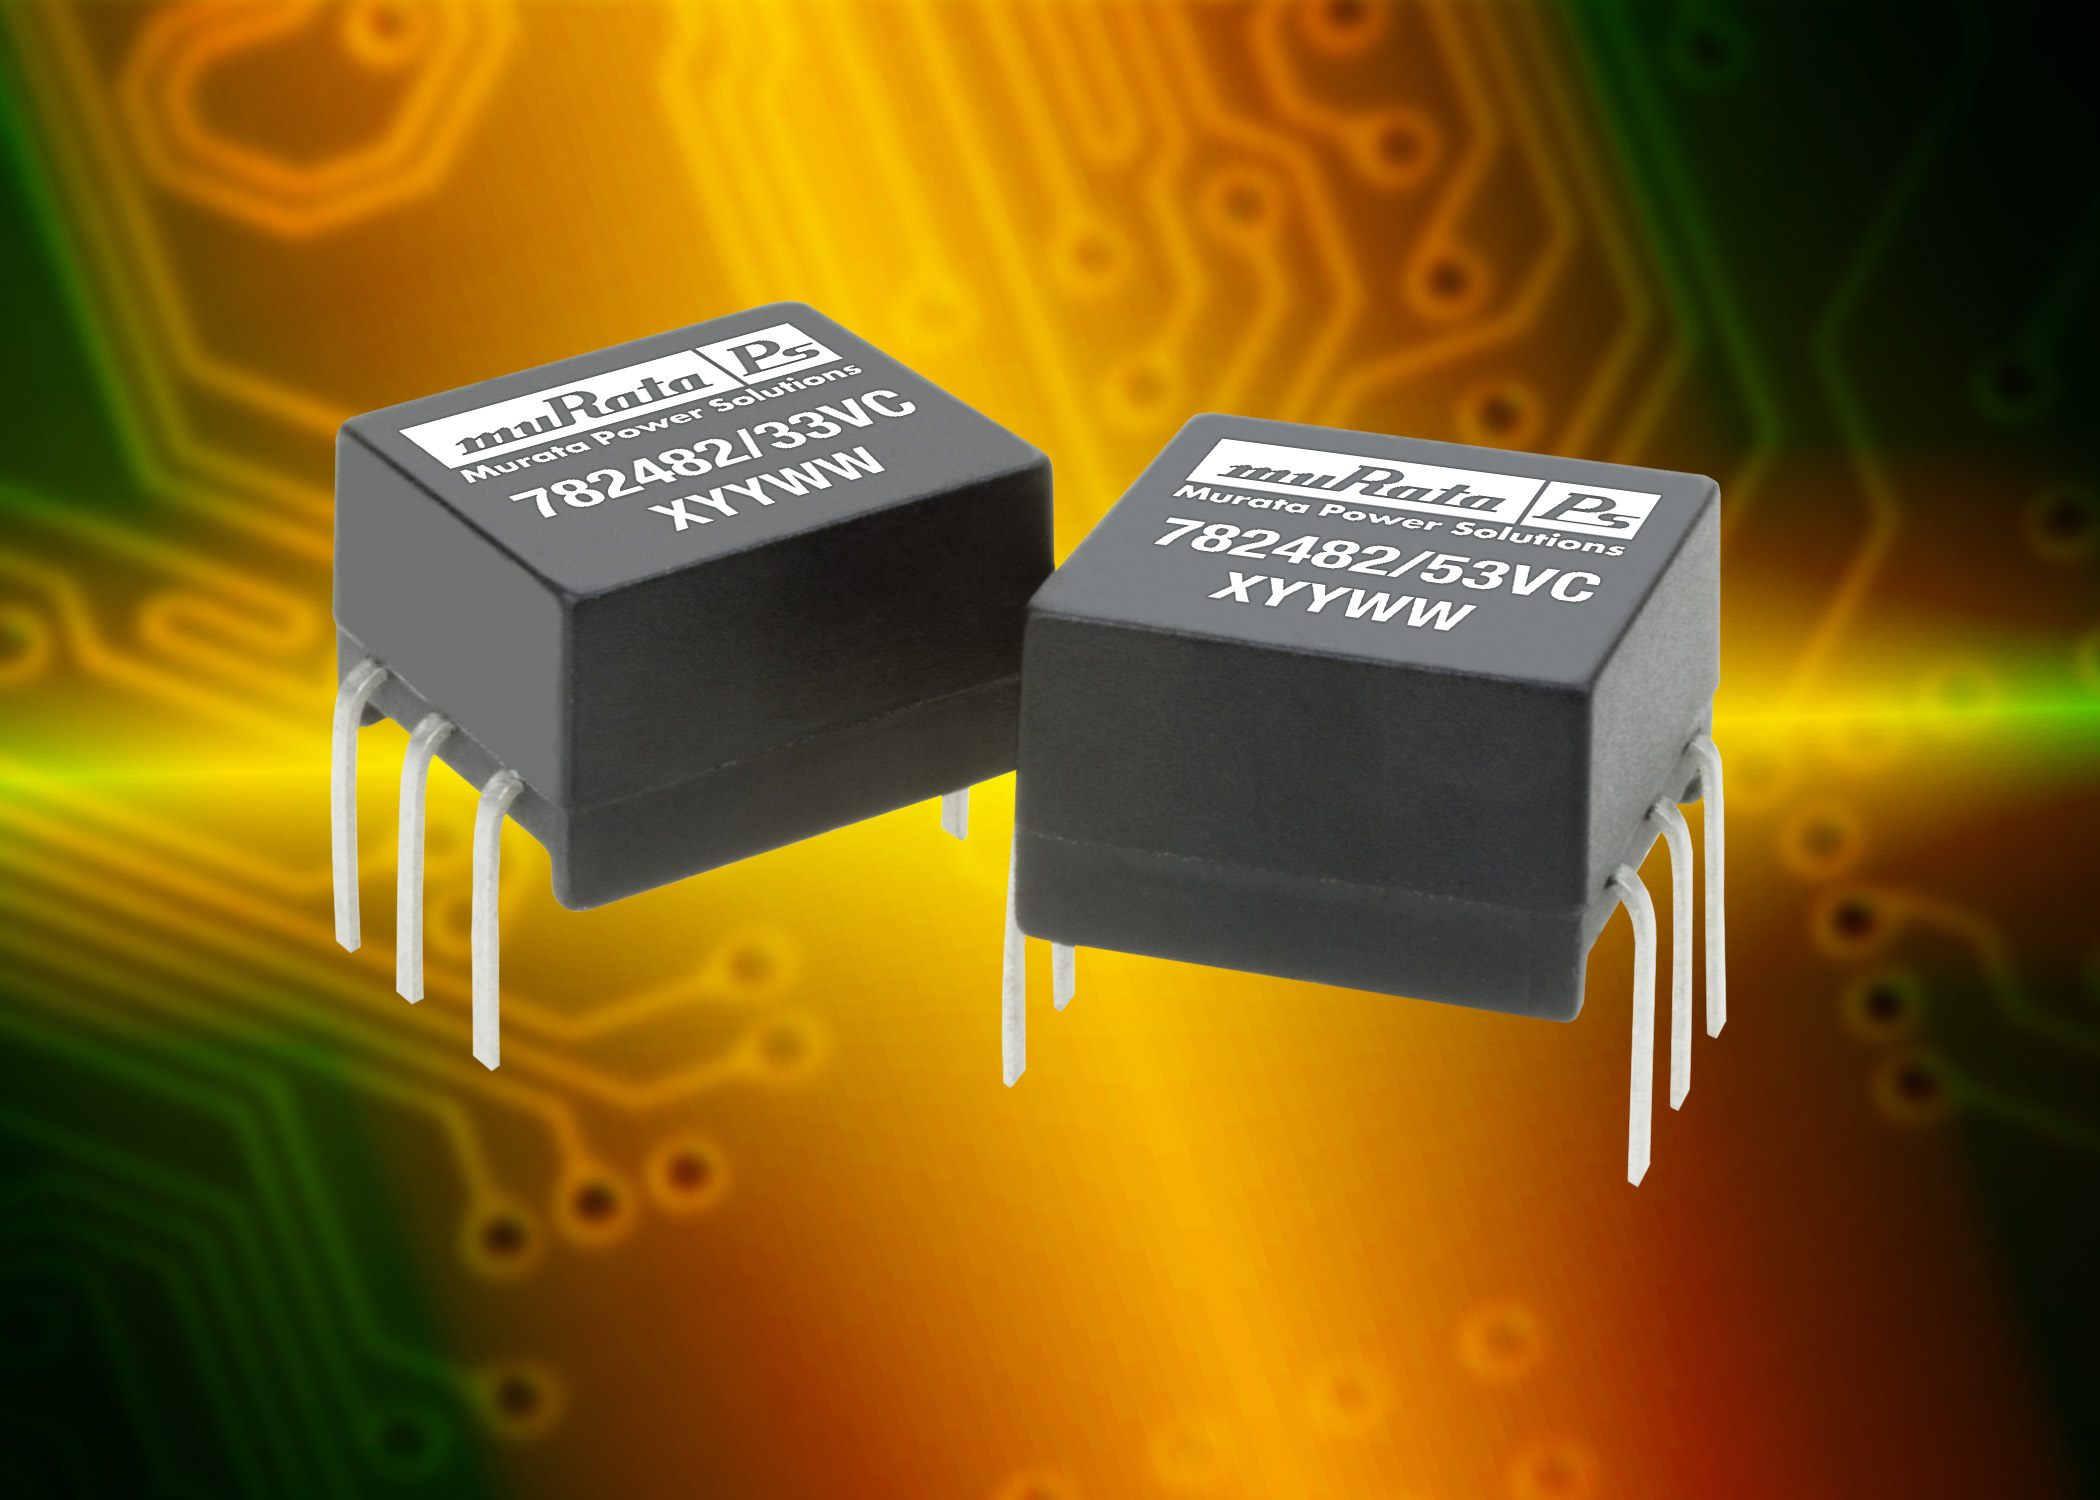 Tansformer : 782482 Low EMI converter transformers approved for use with Analog Devices high speed transceivers